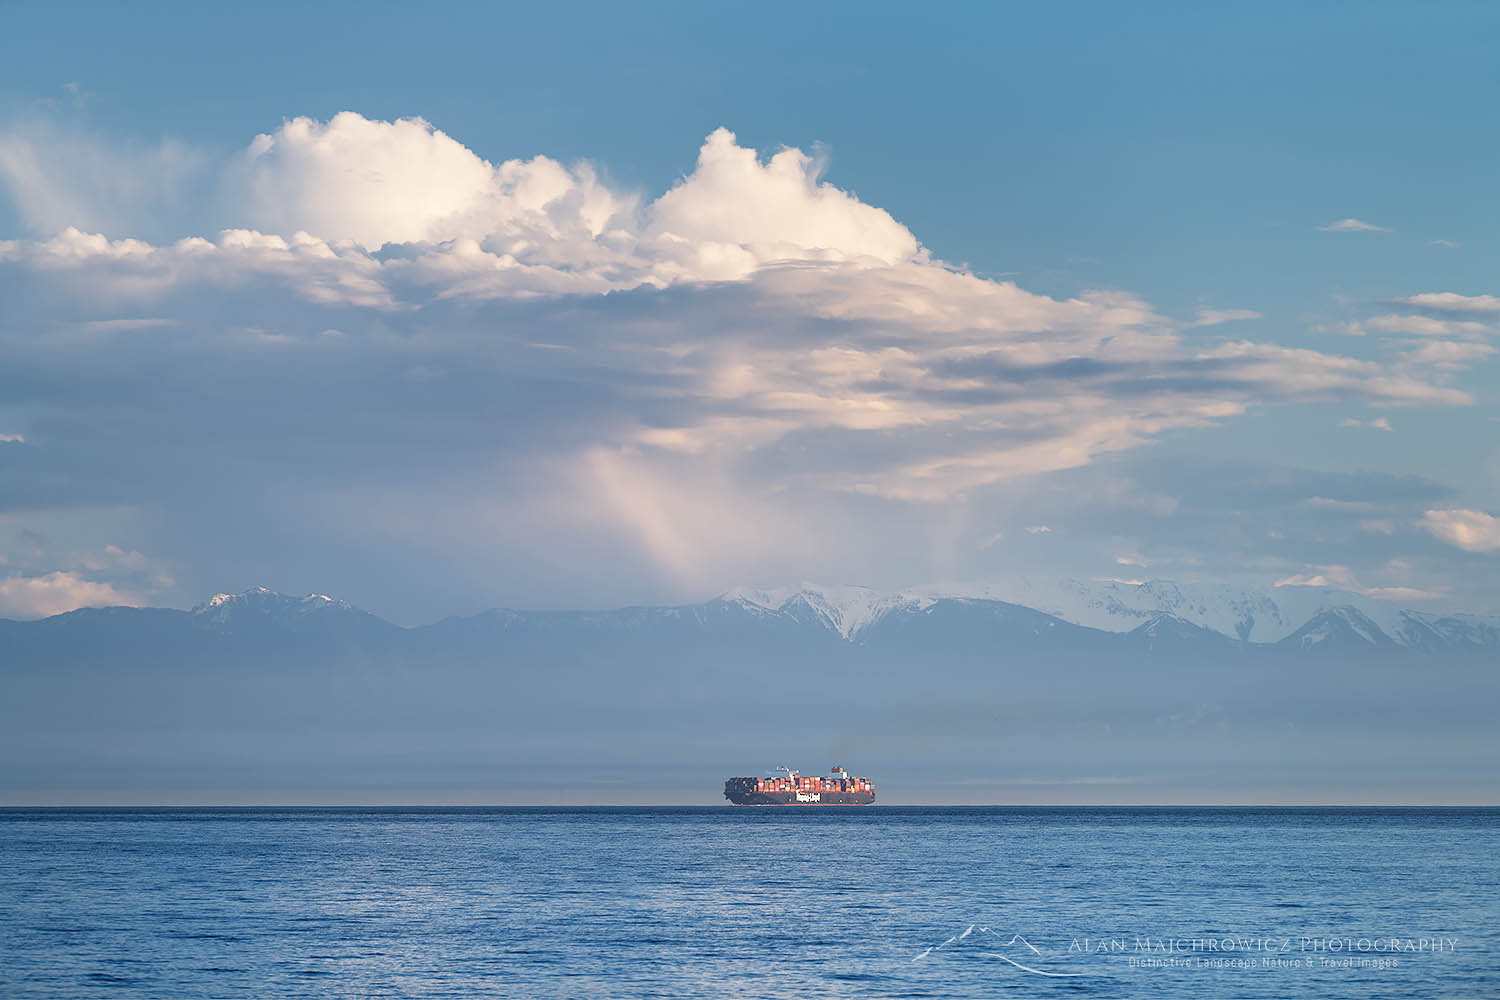 Container Ship Strait of Juan De Fuca